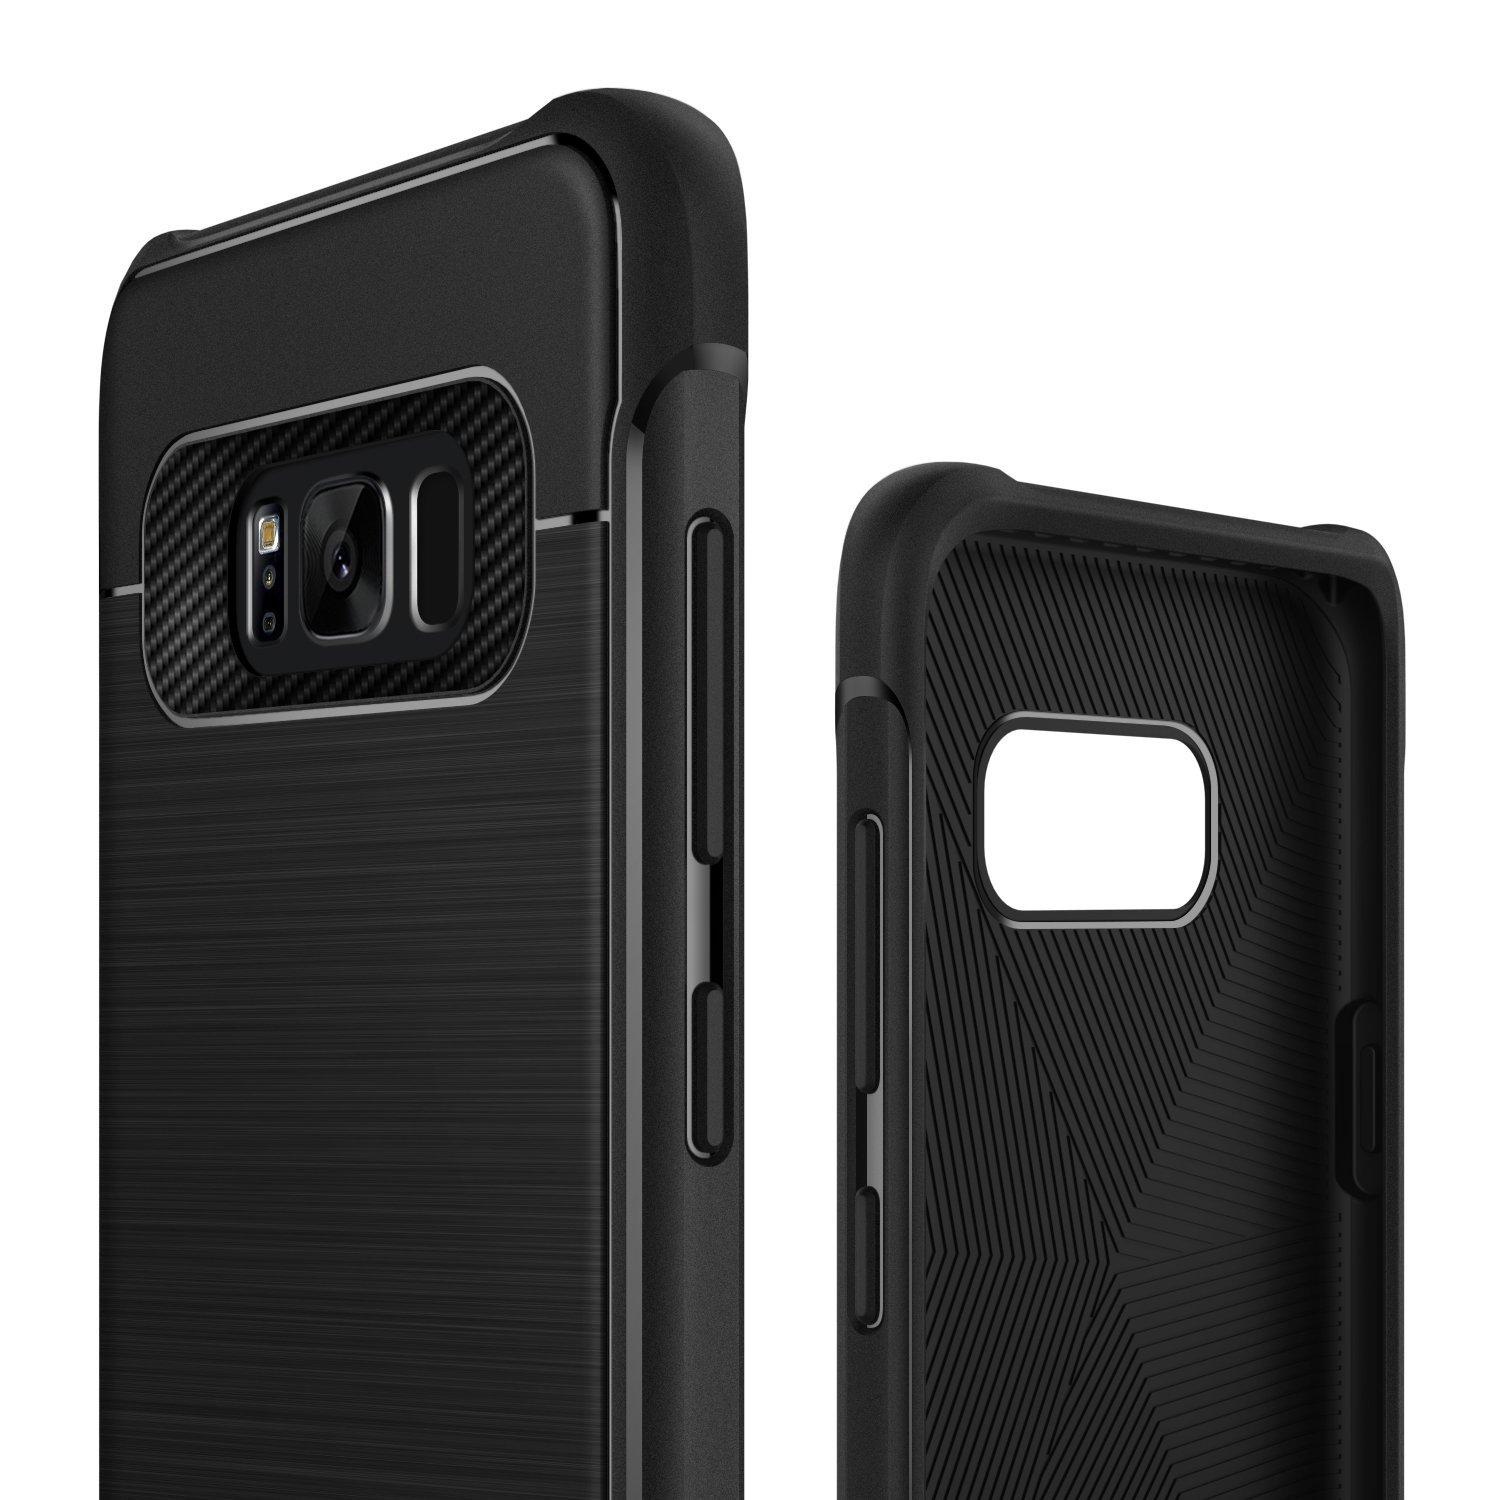 detailed look b38d2 5a372 Here Are the Best Cases to Buy for Your Galaxy S8 & Galaxy S8+